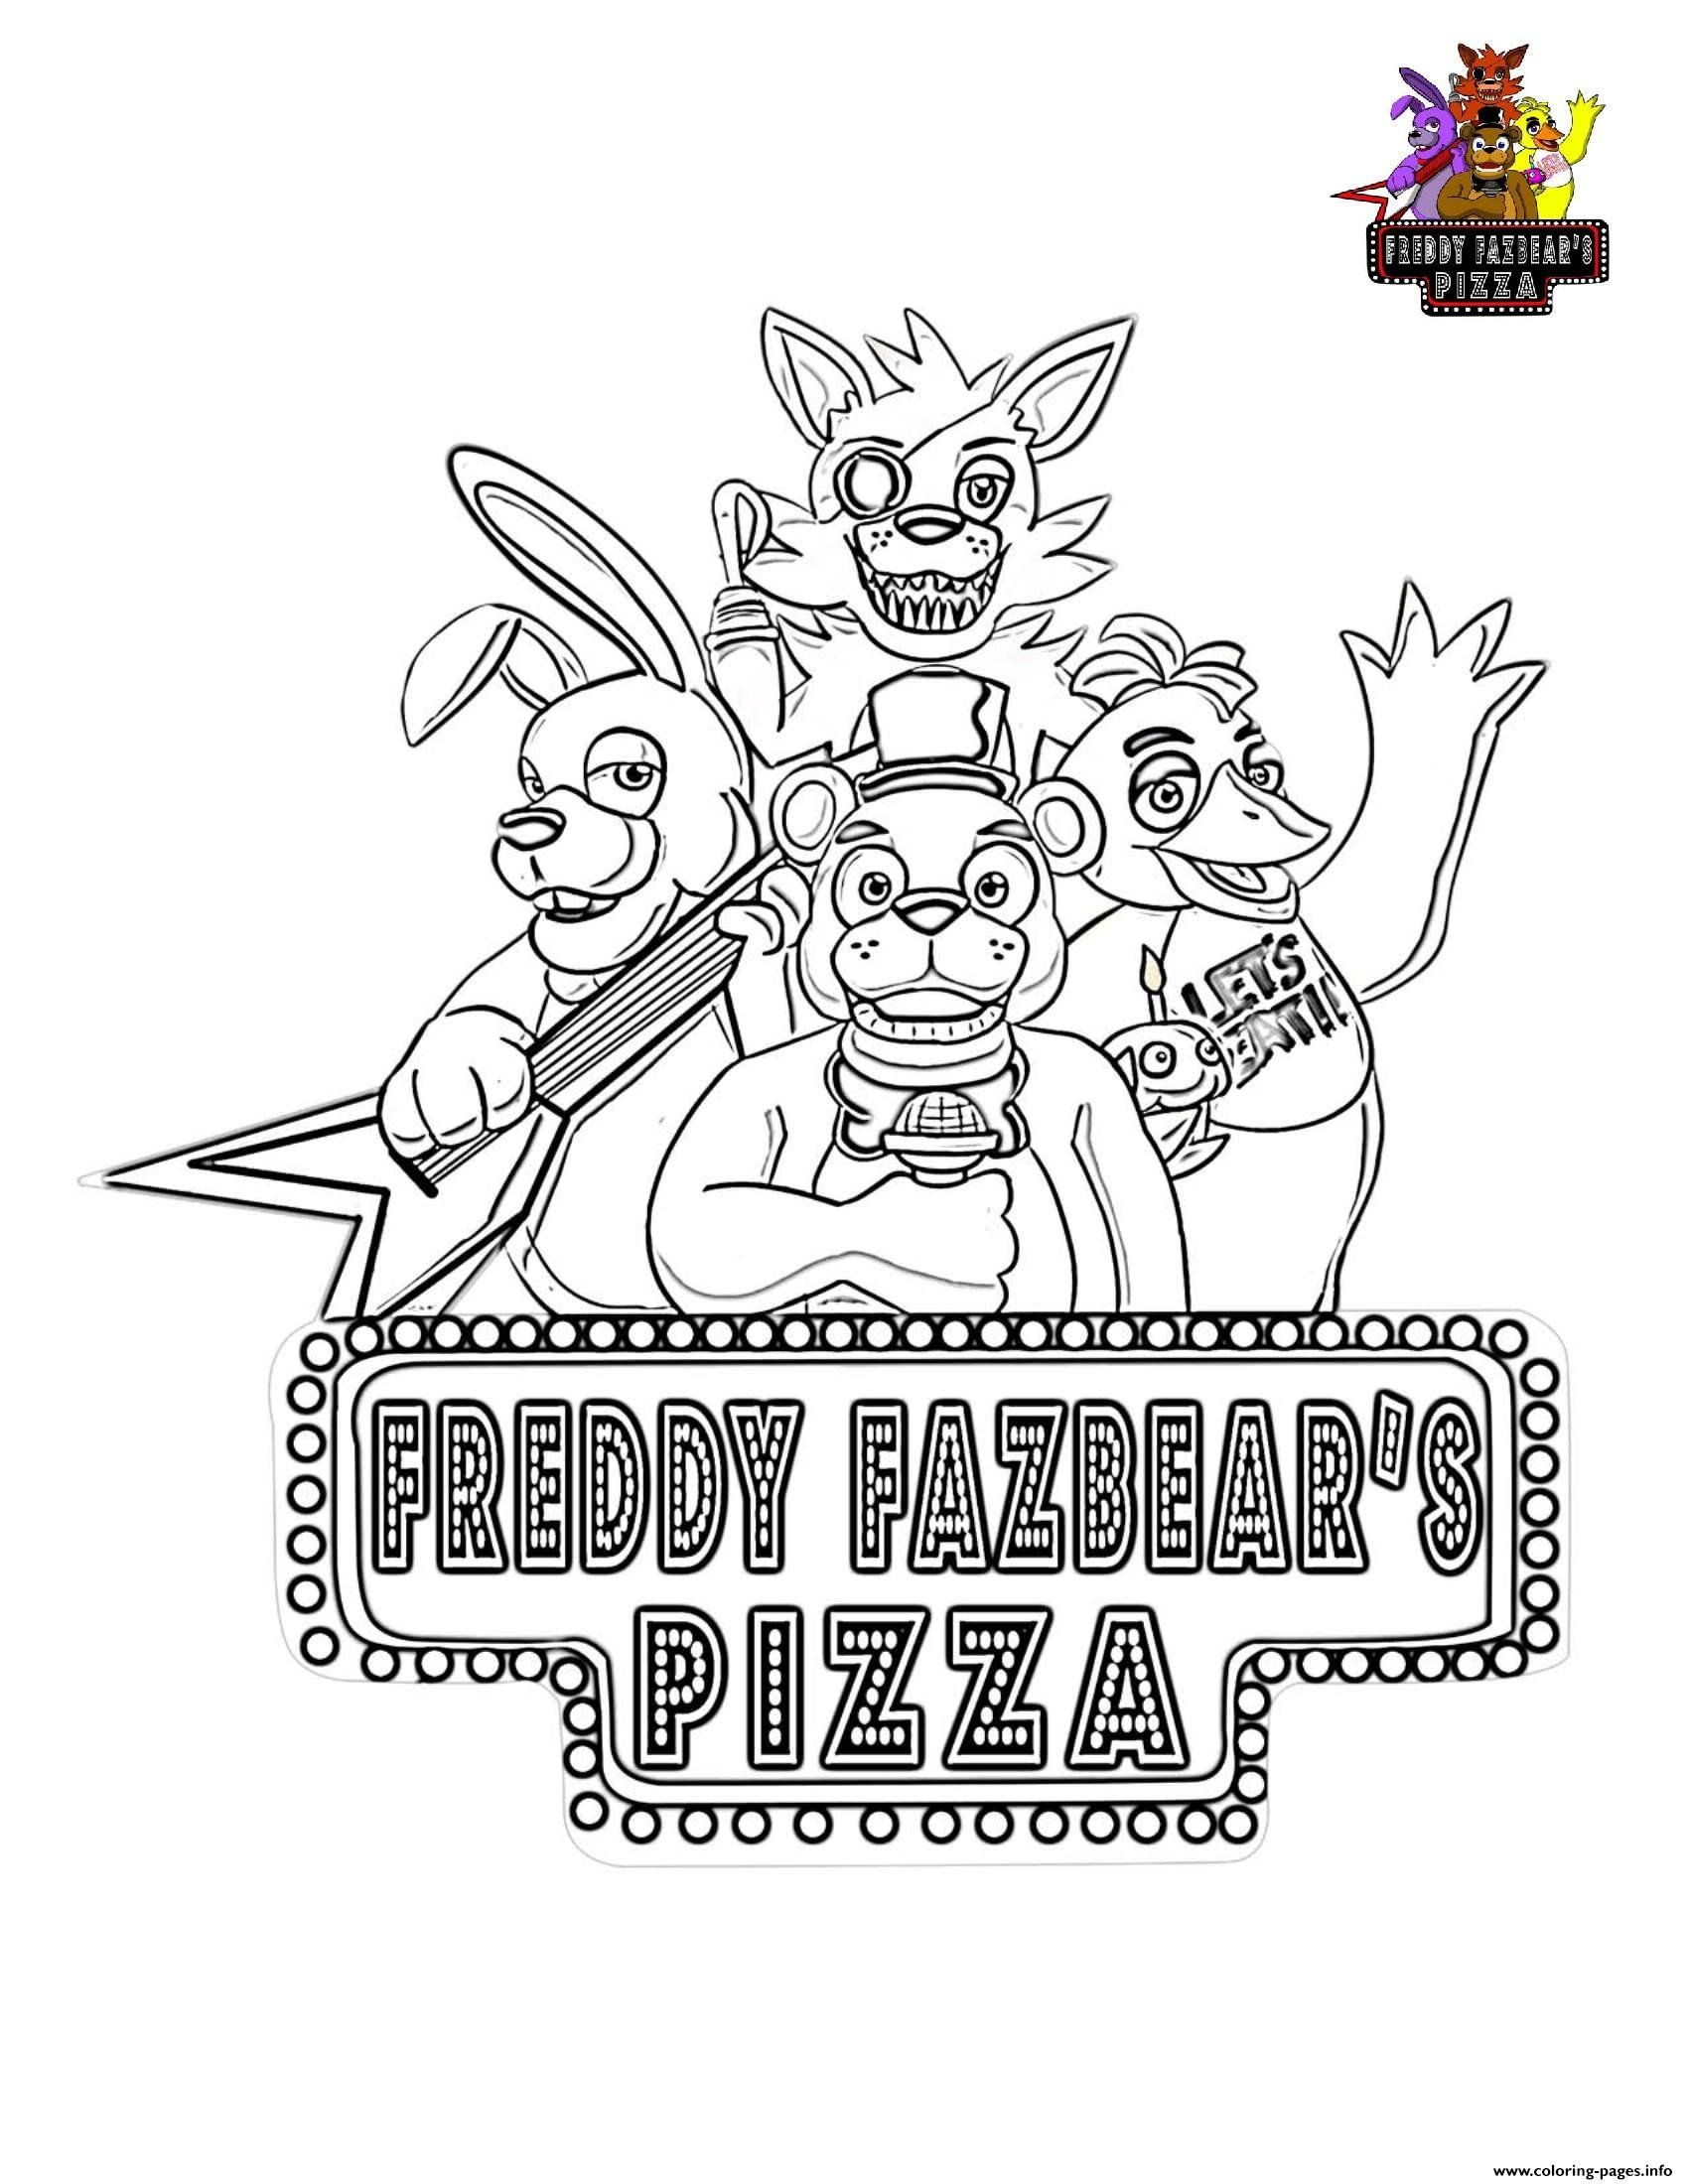 Five Nights At Freddy 039 S Coloring Pages Fresh Cool Free Printable Five Nights At Freddys Colo In 2020 Fnaf Coloring Pages Cartoon Coloring Pages Bee Coloring Pages